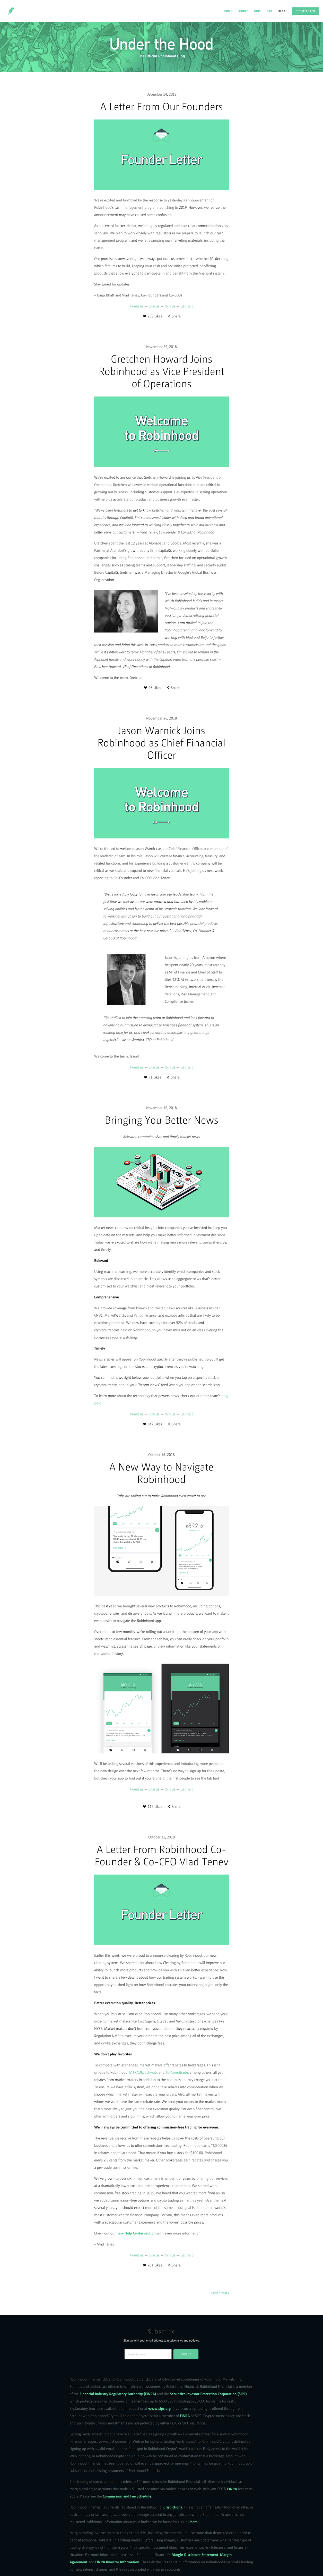 Screenshot of the Blog - Main page from the Robinhood website.